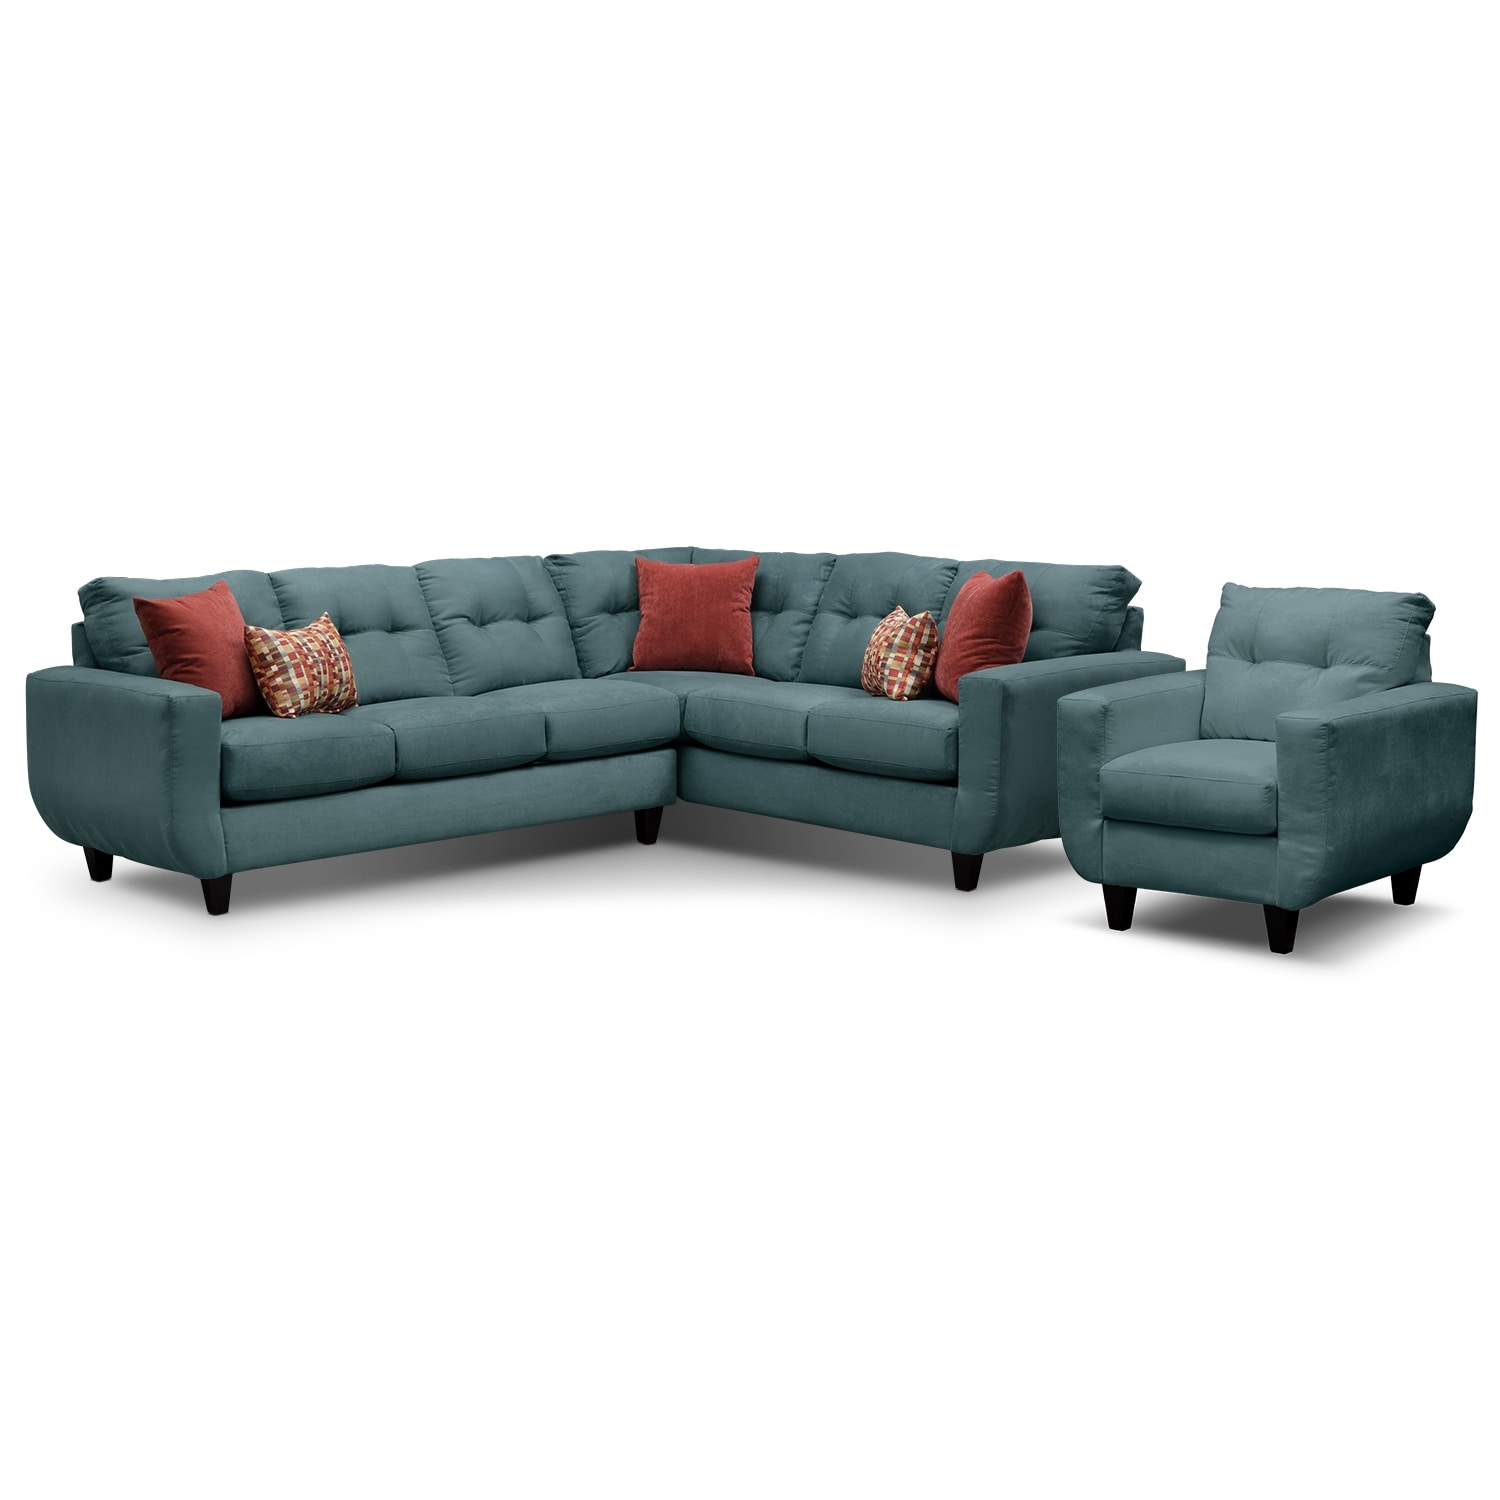 Living Room Furniture - West Village 2-Piece Sectional and Chair Set - Blue